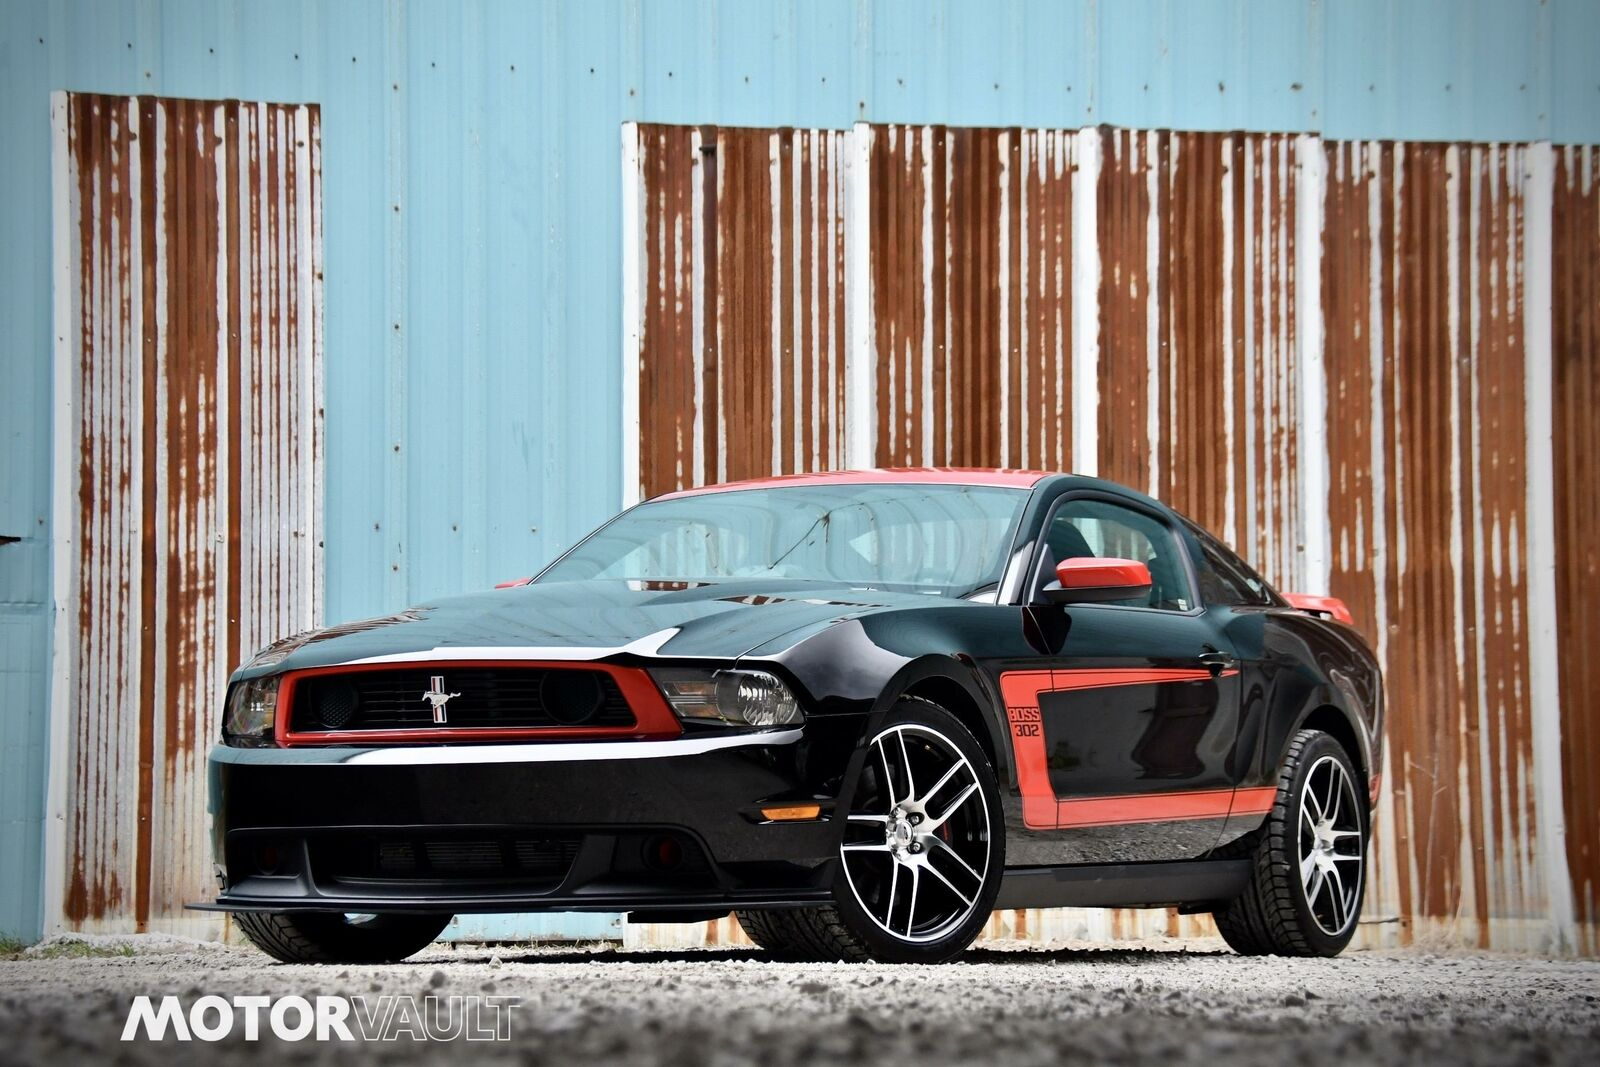 2012 Ford Mustang Boss 302 Laguna Seca - Black w/ Red Stripes and Roof